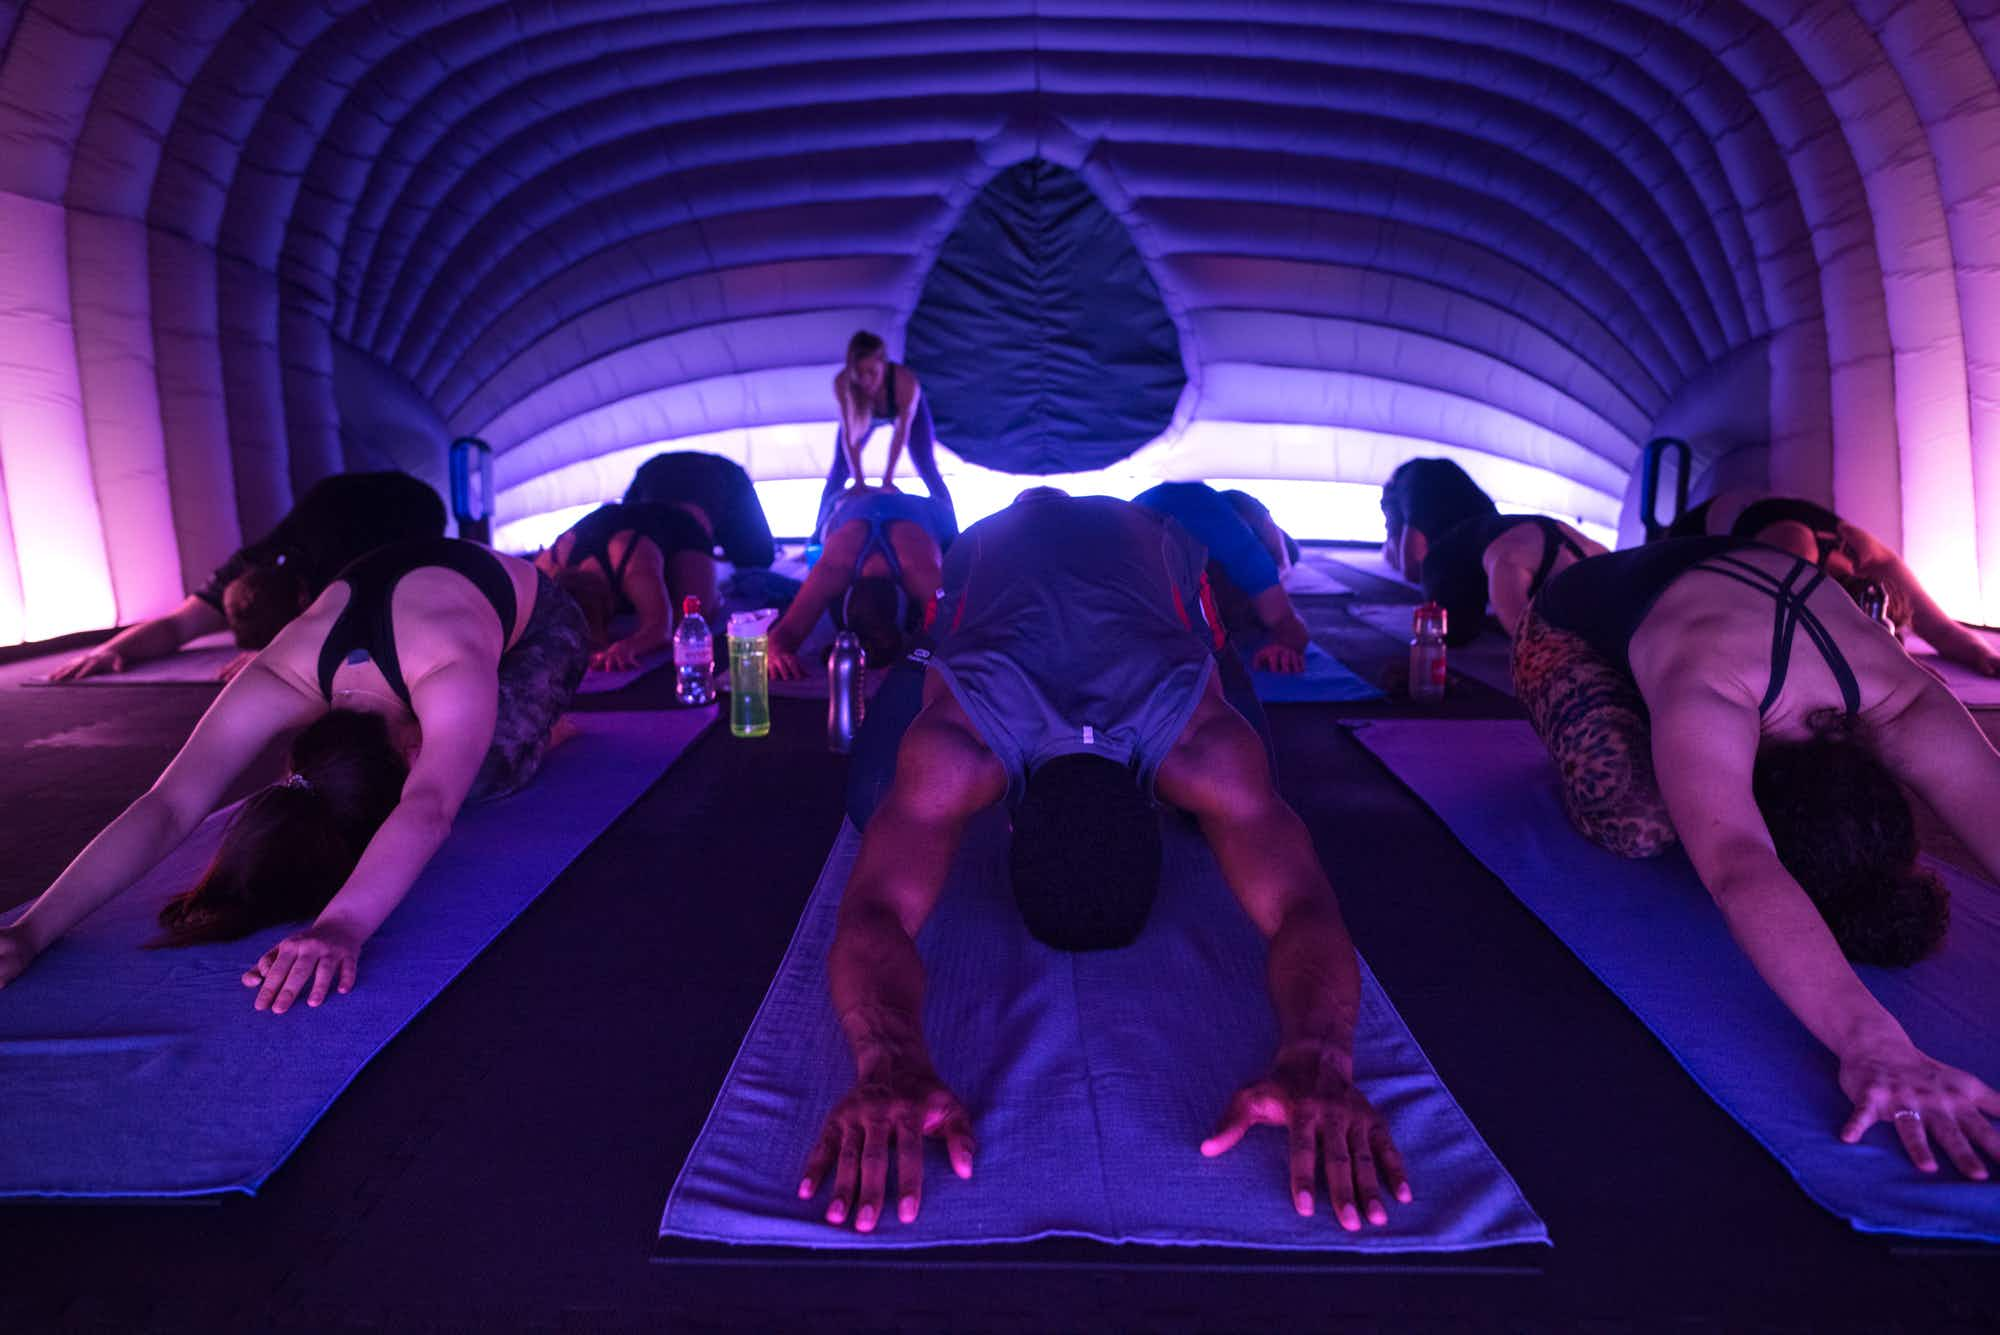 Introducing Hotpod Yoga - inflatable hot yoga studios are coming your way